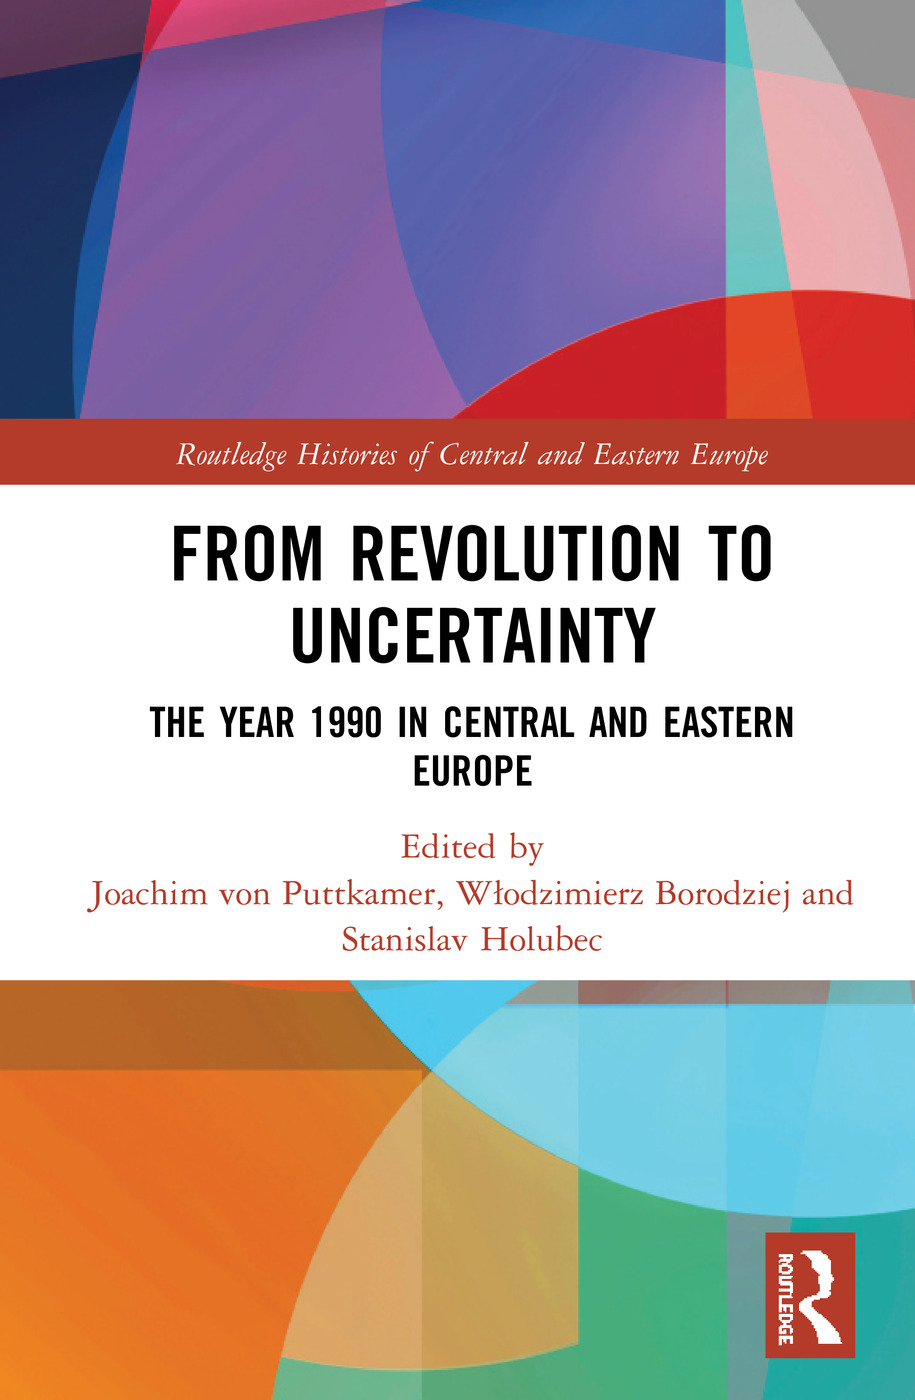 From Revolution to Uncertainty: The Year 1990 in Central and Eastern Europe book cover